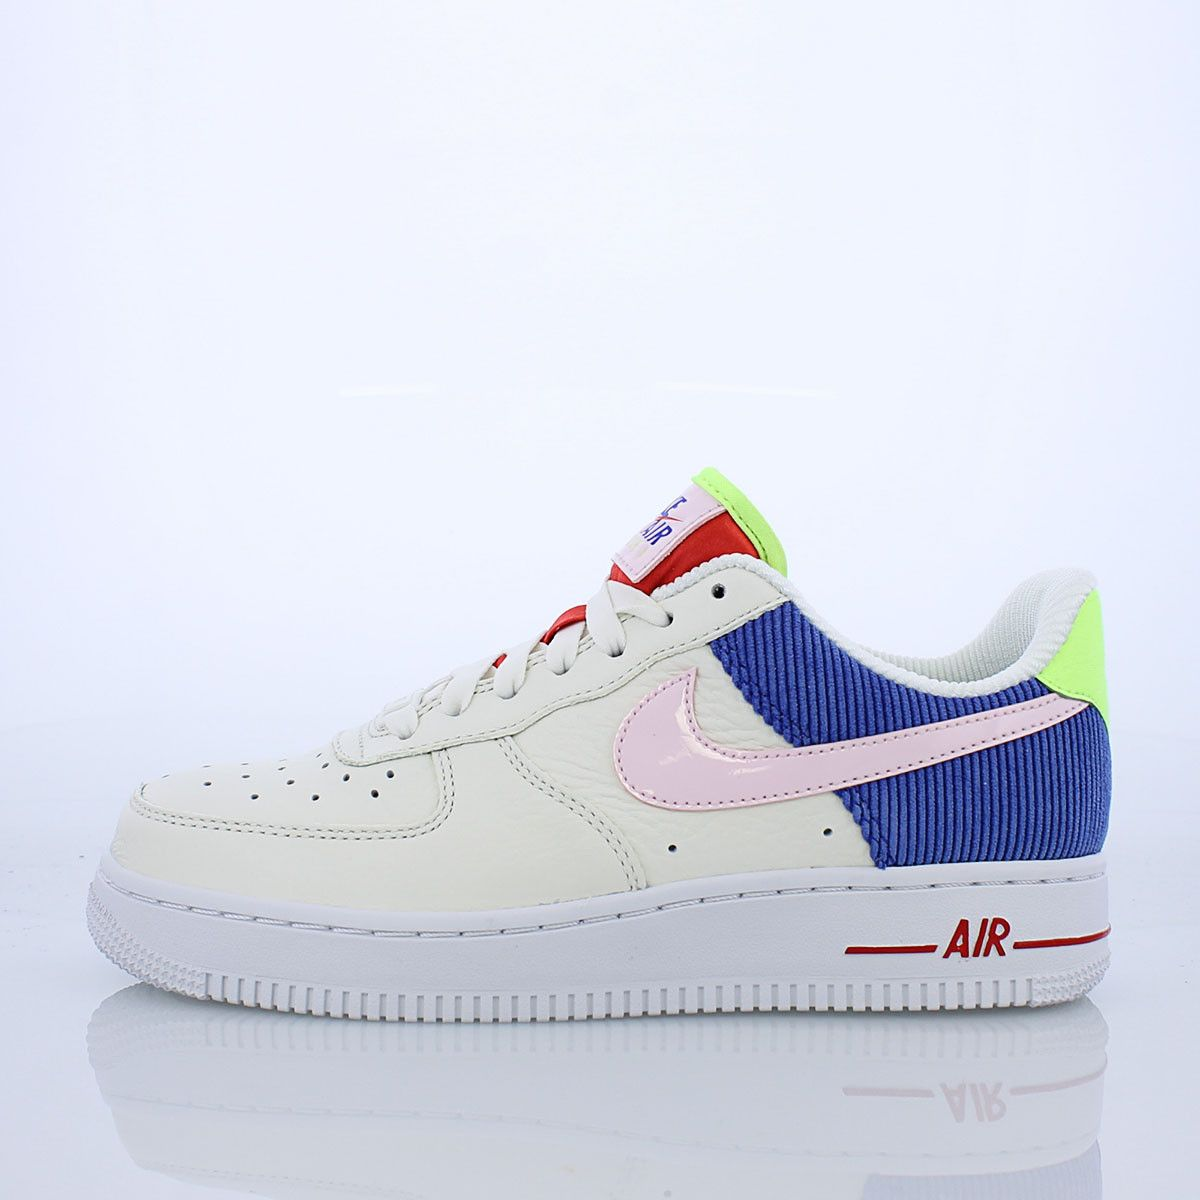 fb096bdde1e0 While flaunting a vibrant color scheme the Air Force 1 Women s gets a  corduroy makeover.